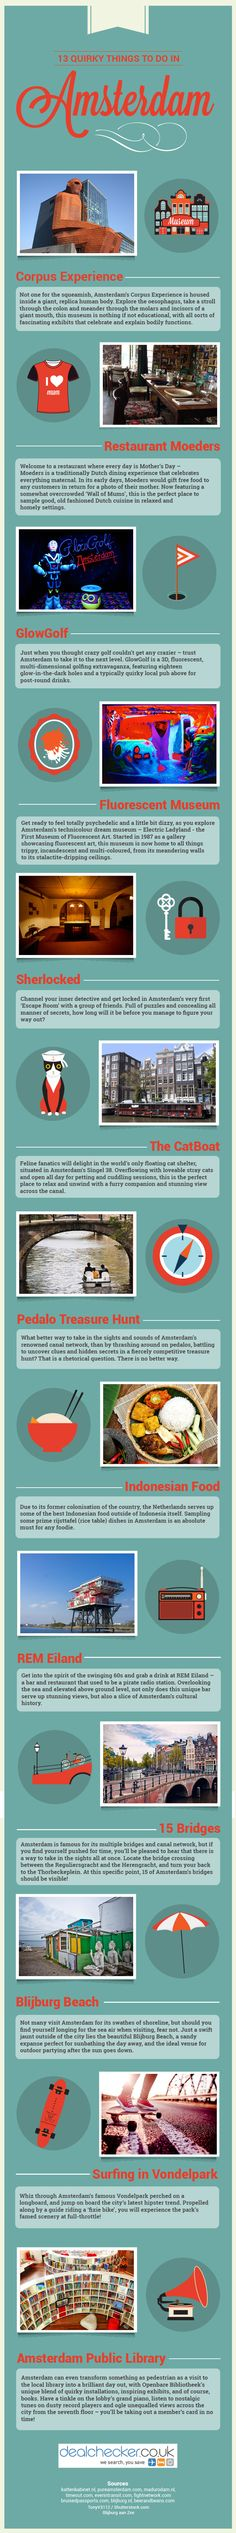 Quirky things to do in Amsterdam #infographic